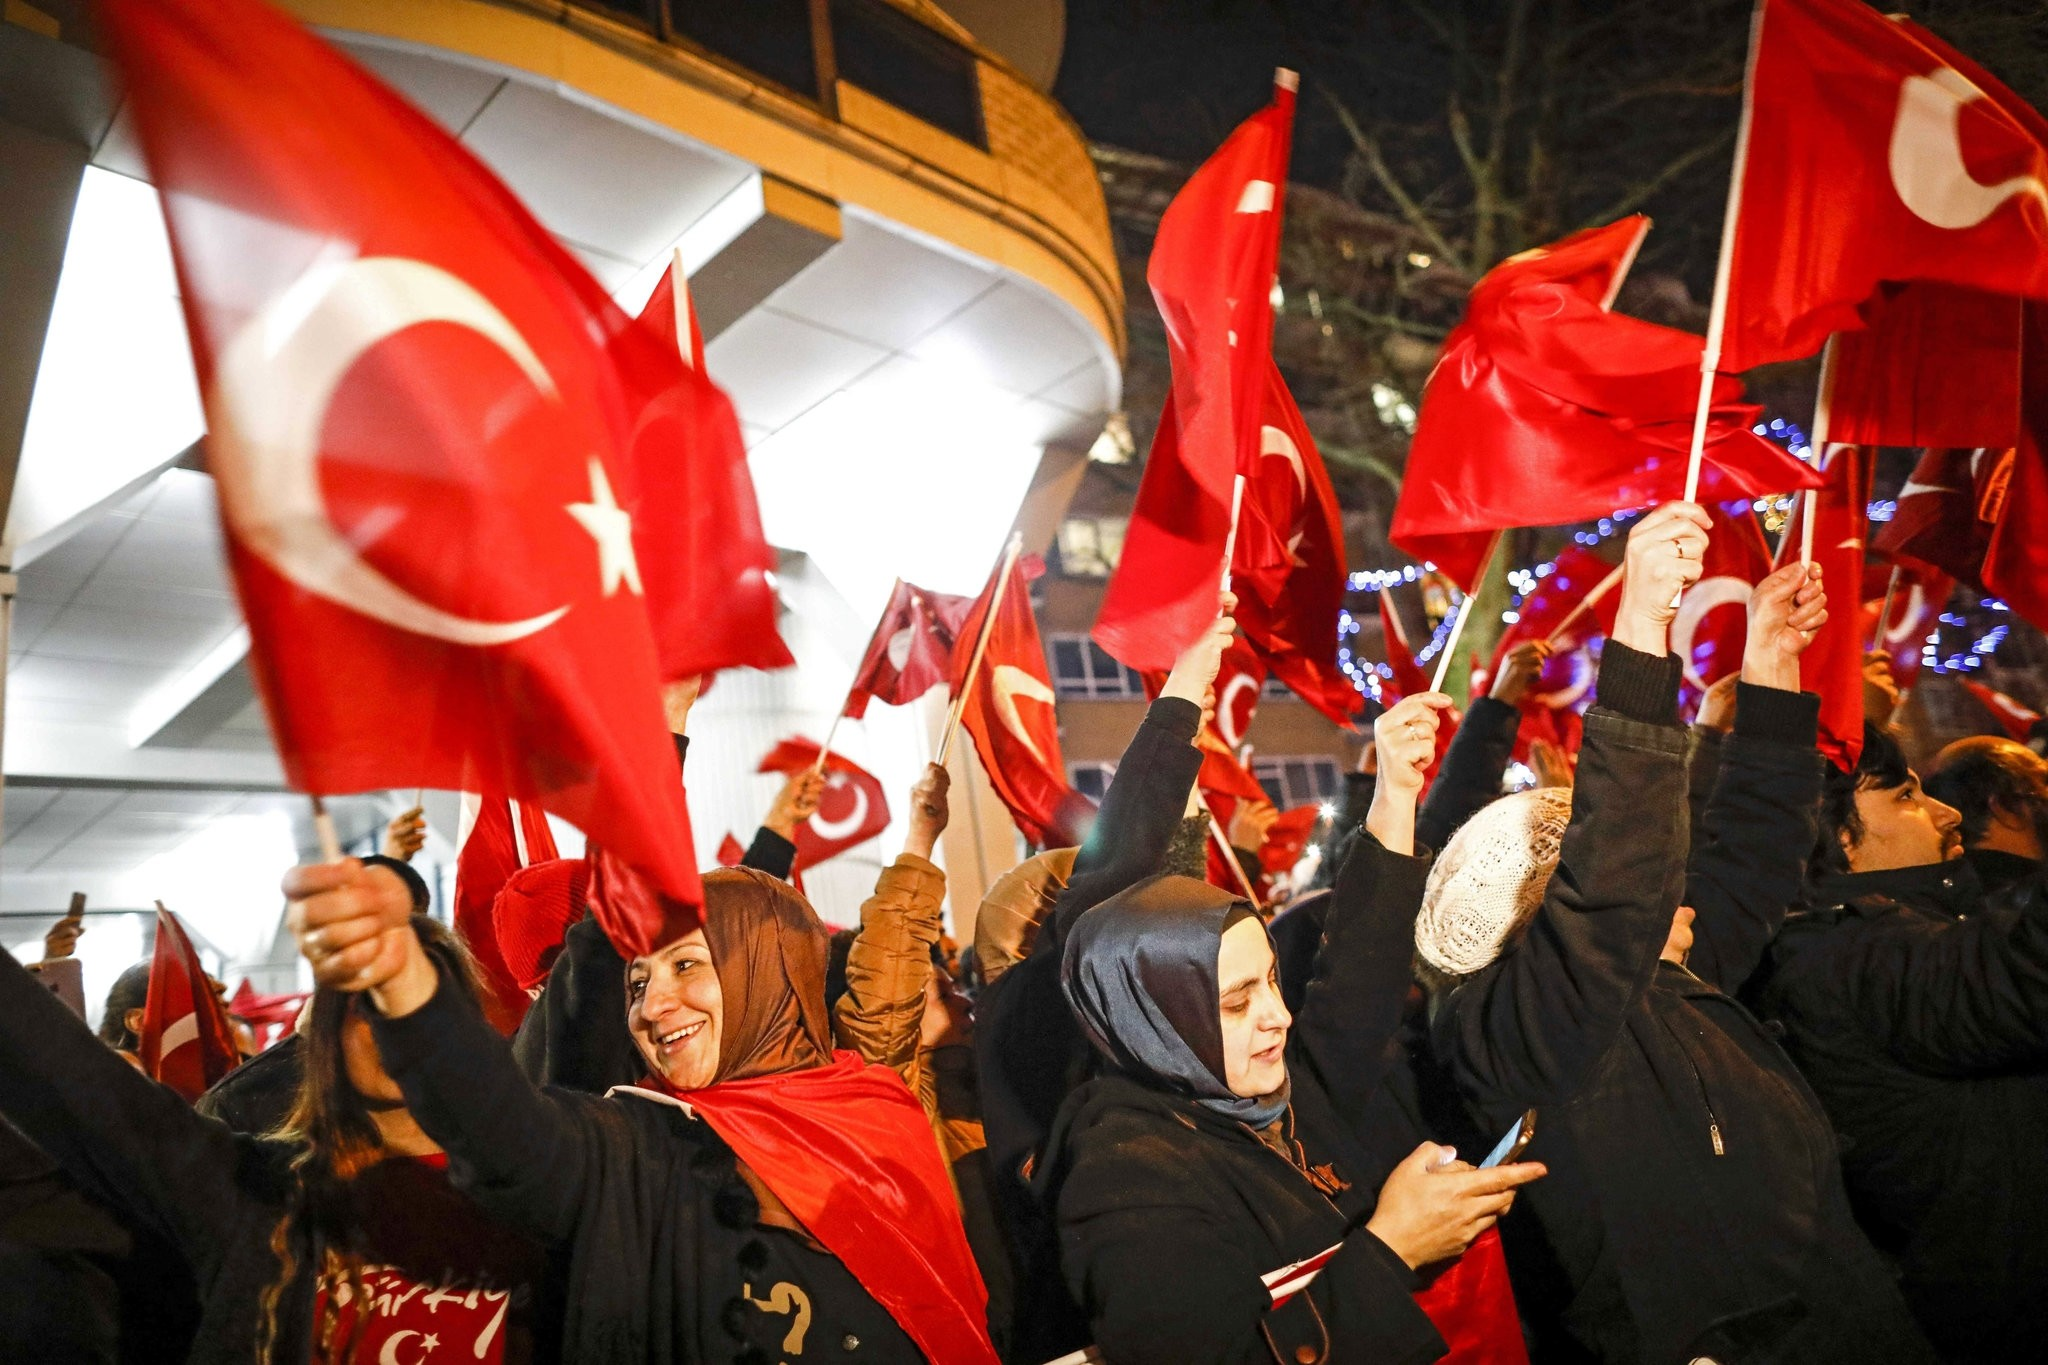 People wave Turkey flags as they protest outside the Turkish consulate in Rotterdam, the Netherlands, 11 March 2017. (EPA Photo)